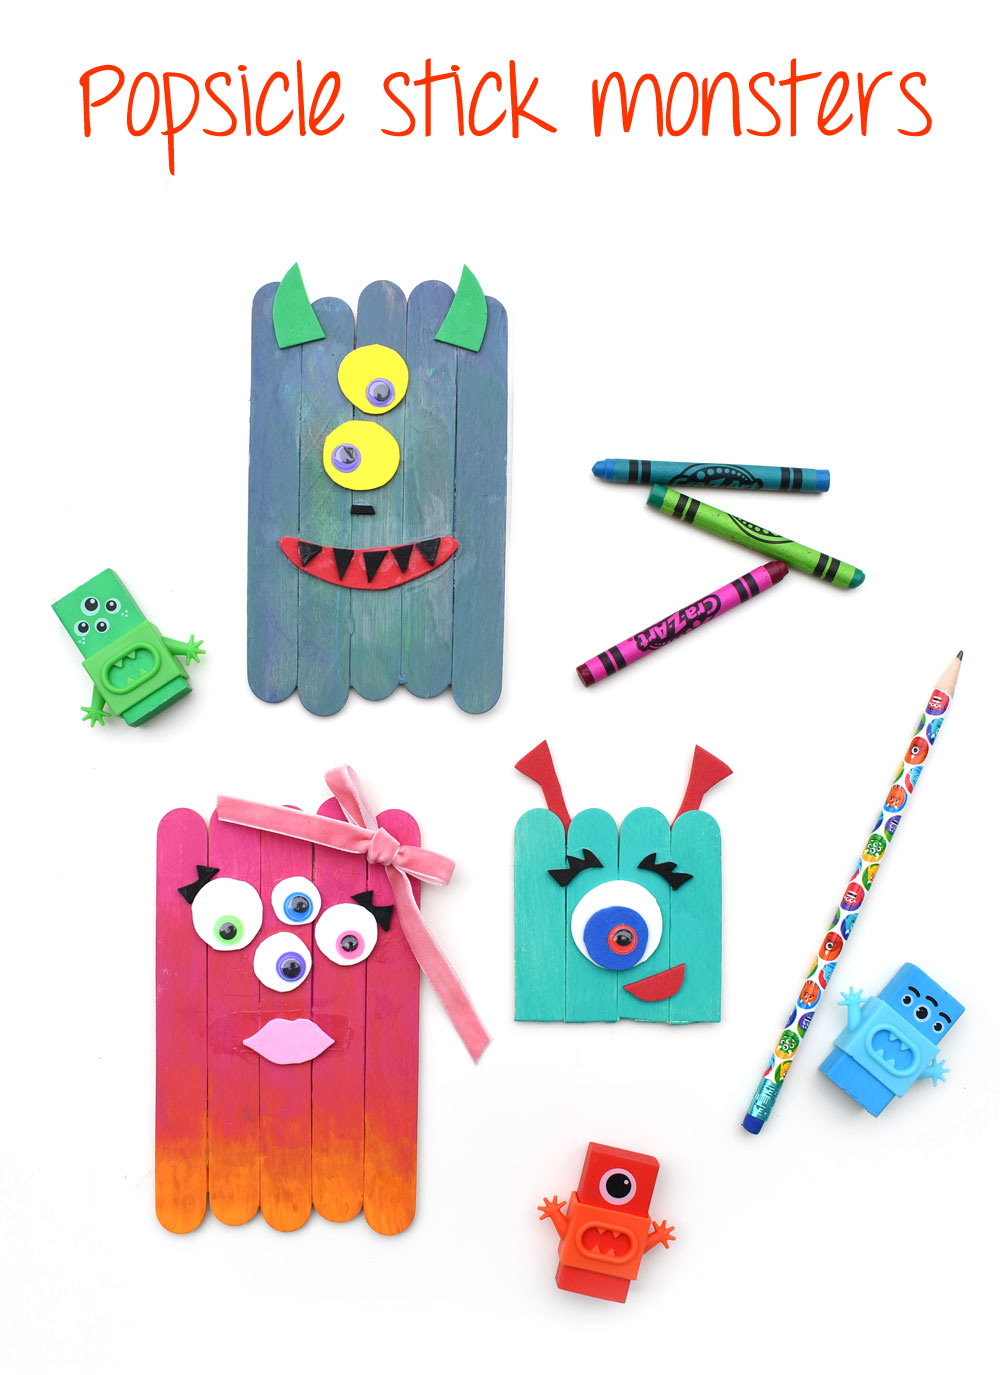 Creative DIY popsicle stick monsters kids craft